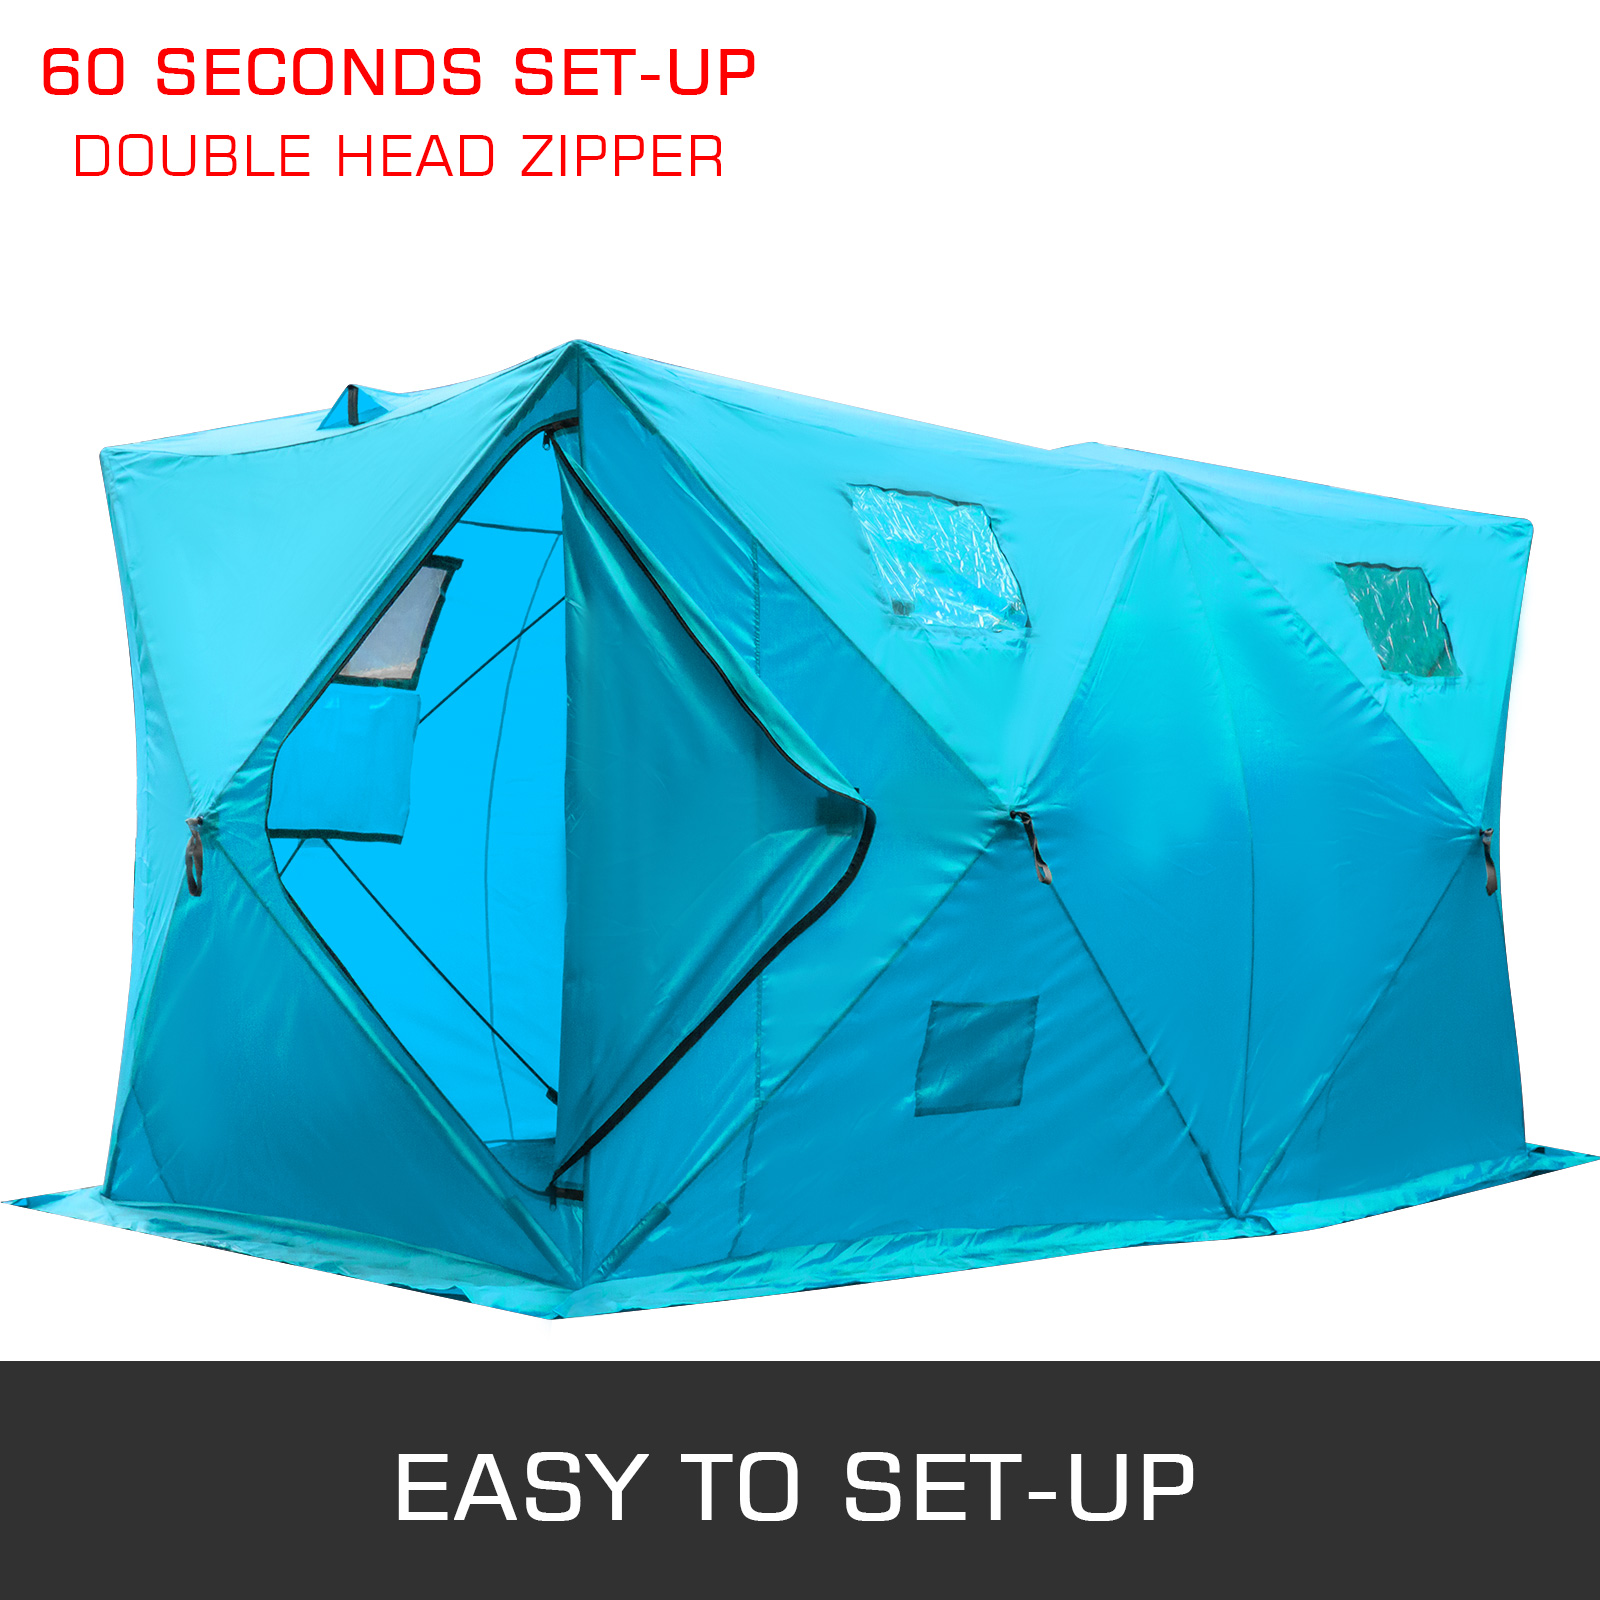 2-Person Waterproof Shelter Instant Pop Up Tent Camping Ice Fishing Privacy Room